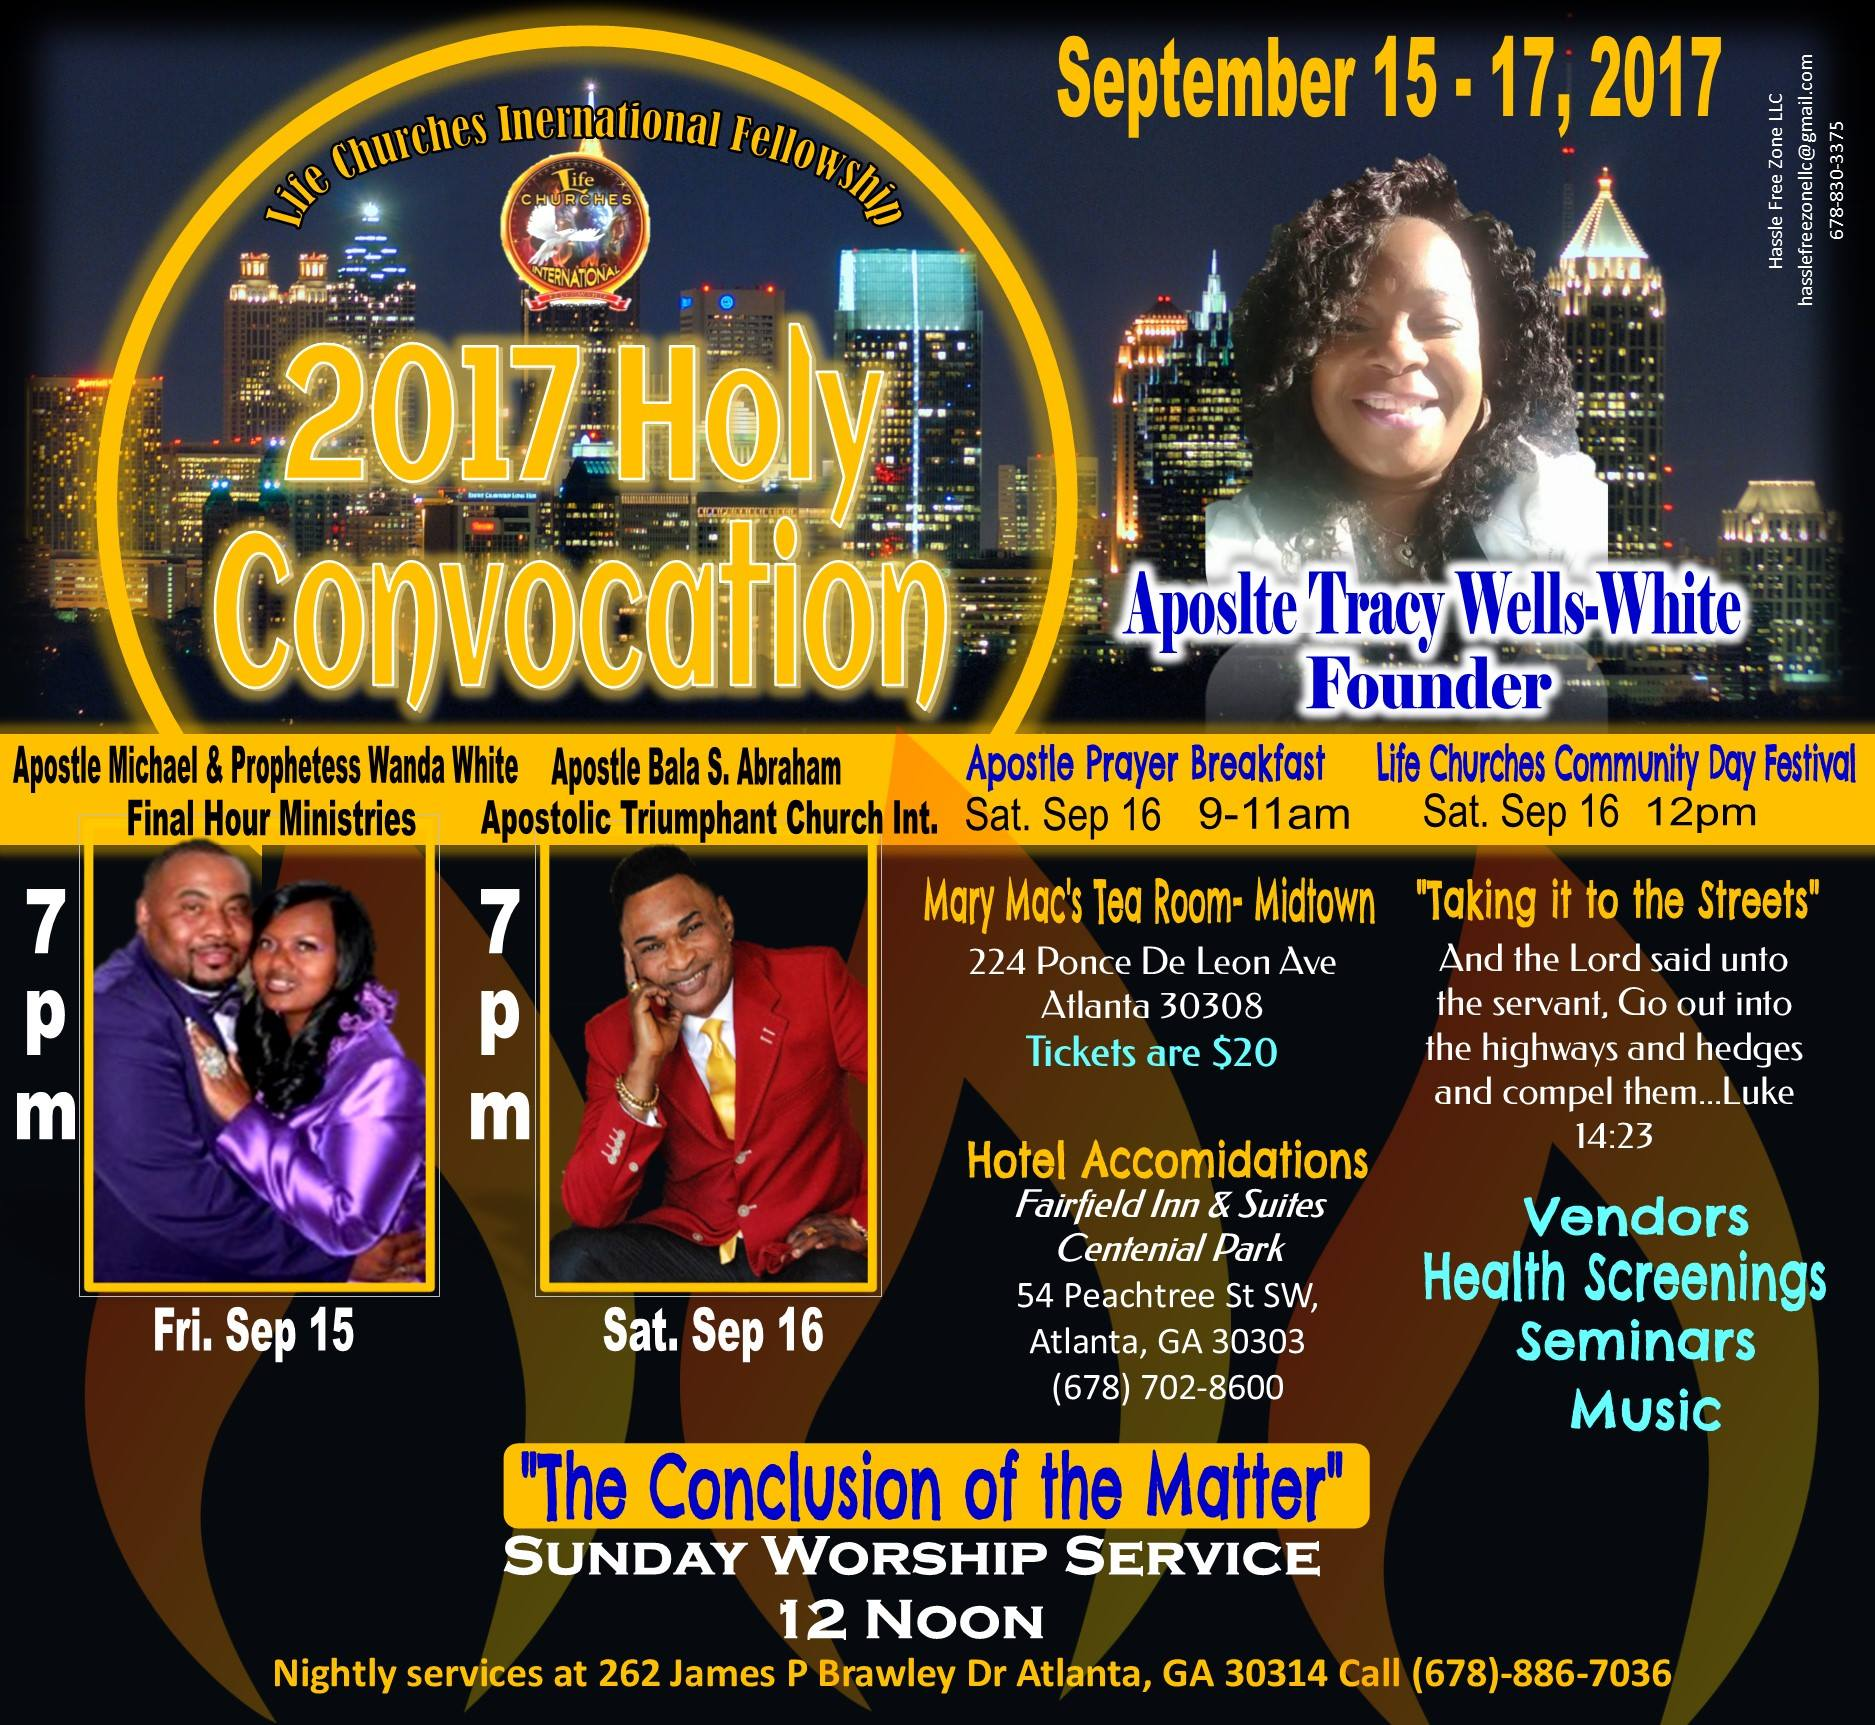 2017 Holy Convocation - Aposlt Tracy wells white.jpg